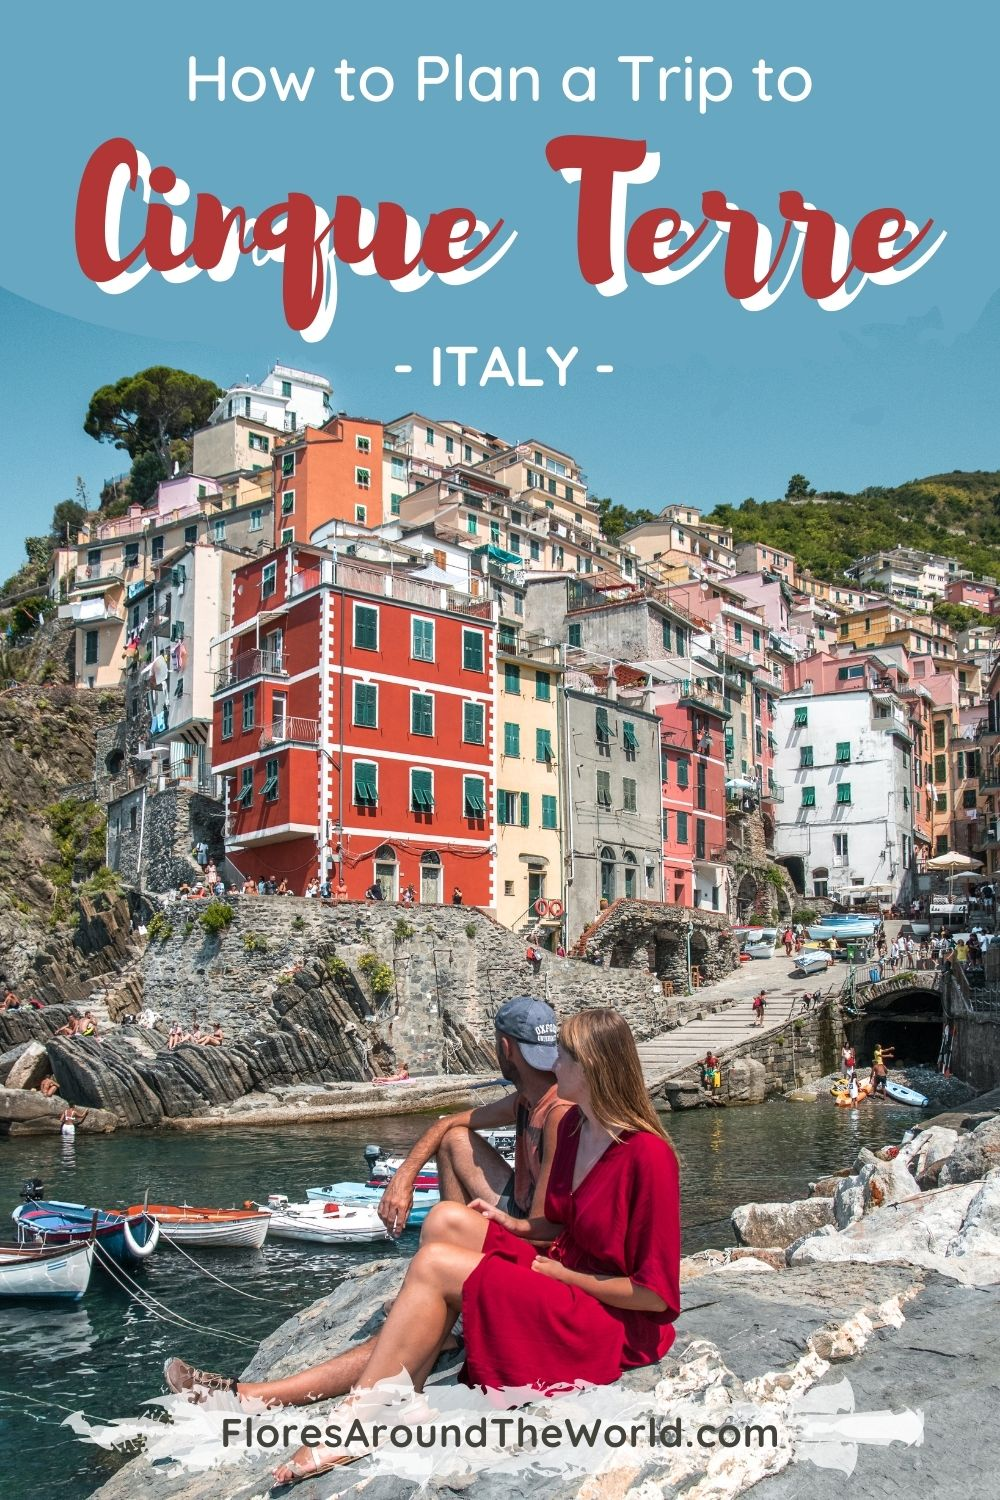 5 Towns of Cinque Terre: How to Plan Your Visit